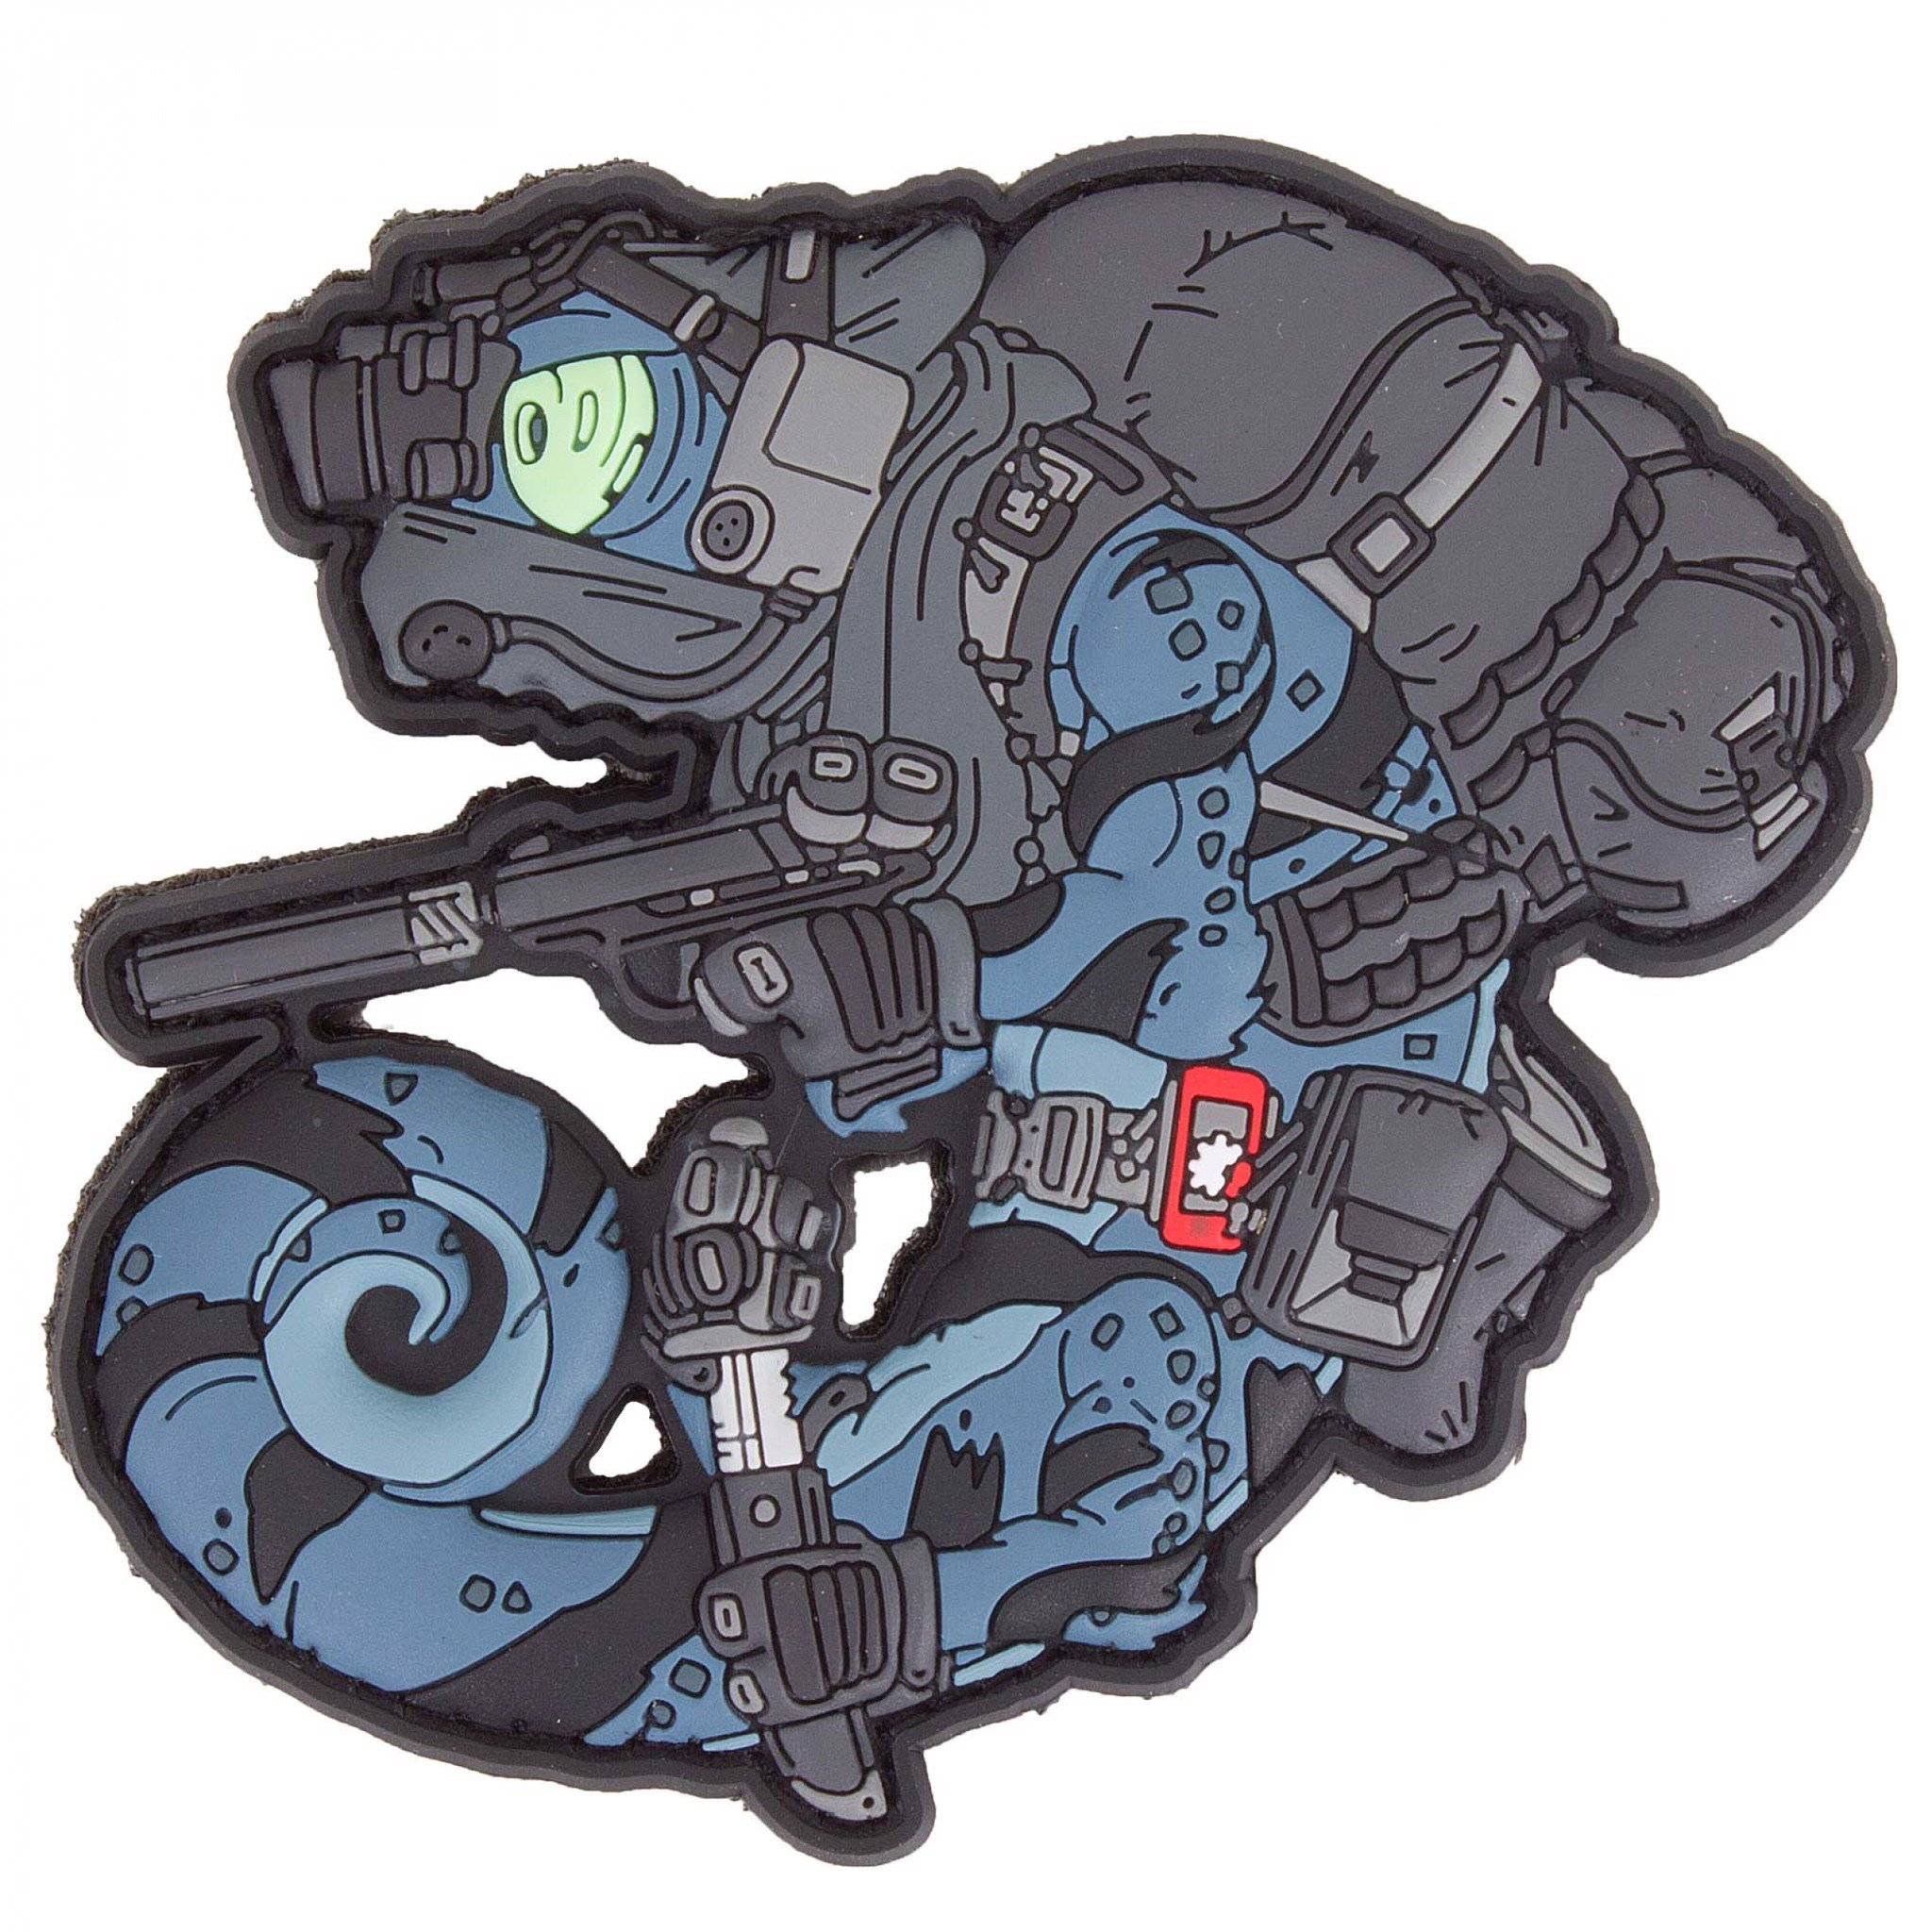 TACTICAL CHAMELEON LEGION NIGHTSTALKER PATCH